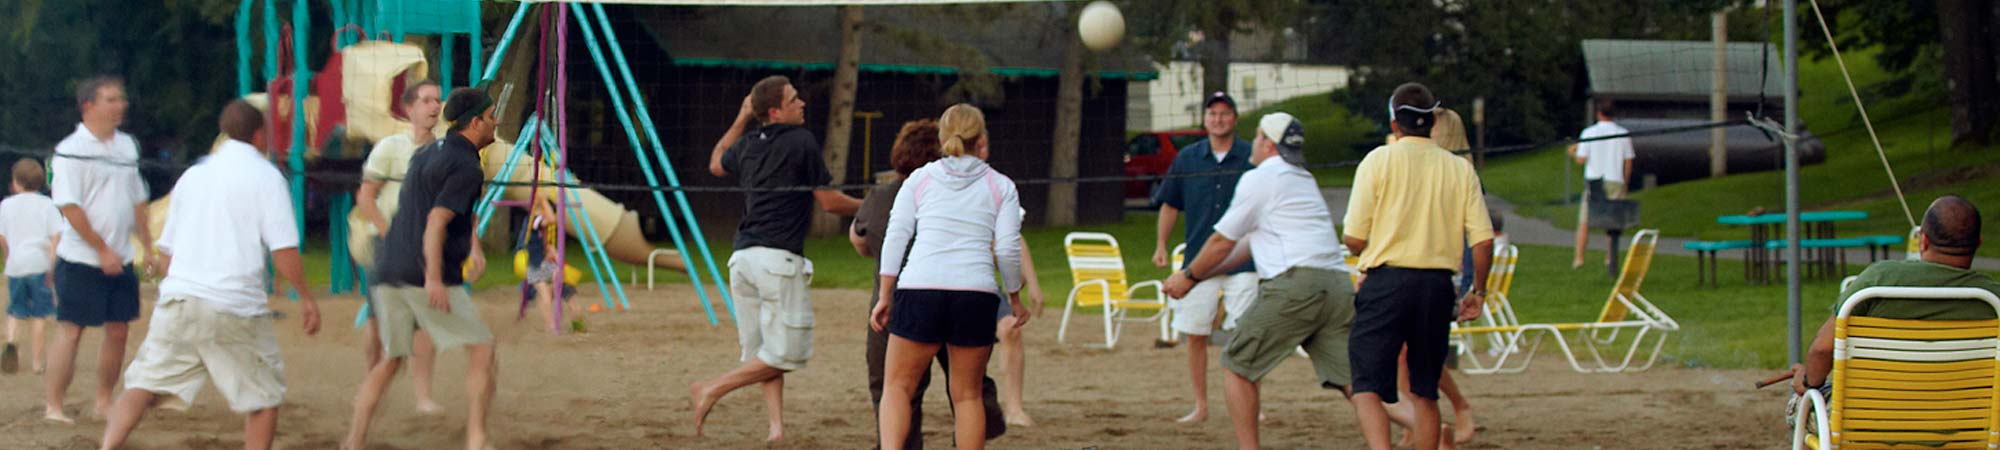 slide-Reunion_volleyball_2000x450